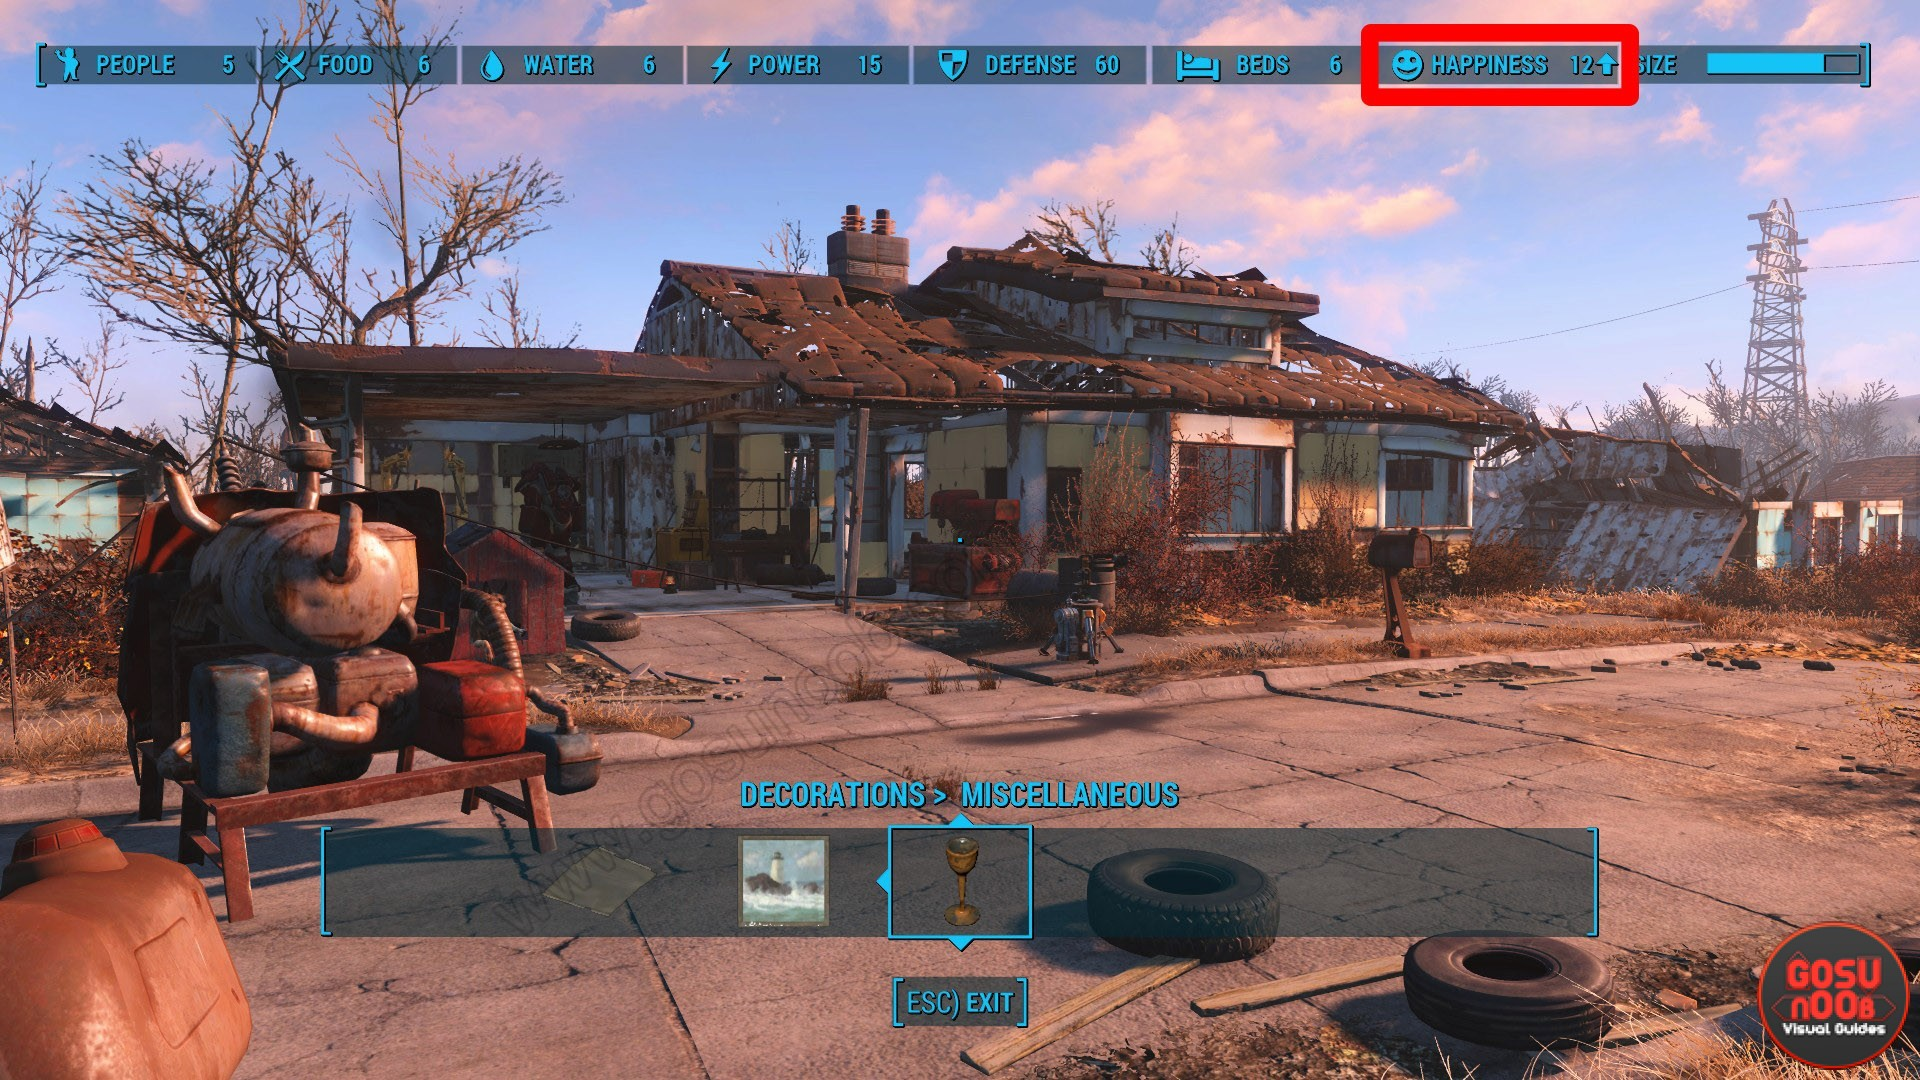 How to raise happiness in settlements fallout 4 gosu noob for Fallout 4 bedroom ideas